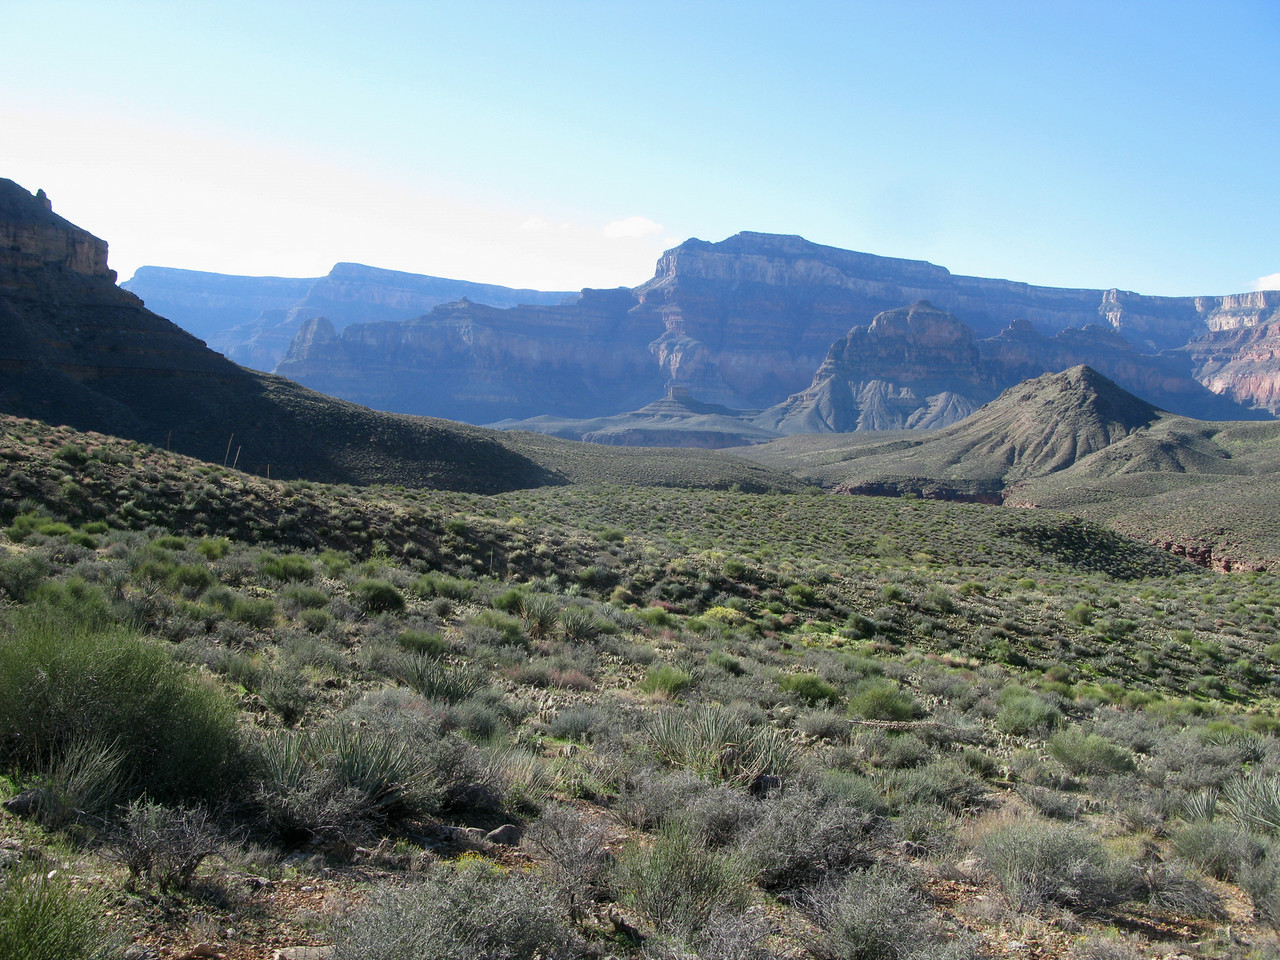 From an aircraft, the remote Tonto Plateau appears to be a flat and easy hike, but it's an illusion. There is a series of deep ravines and drainages that must be traversed.